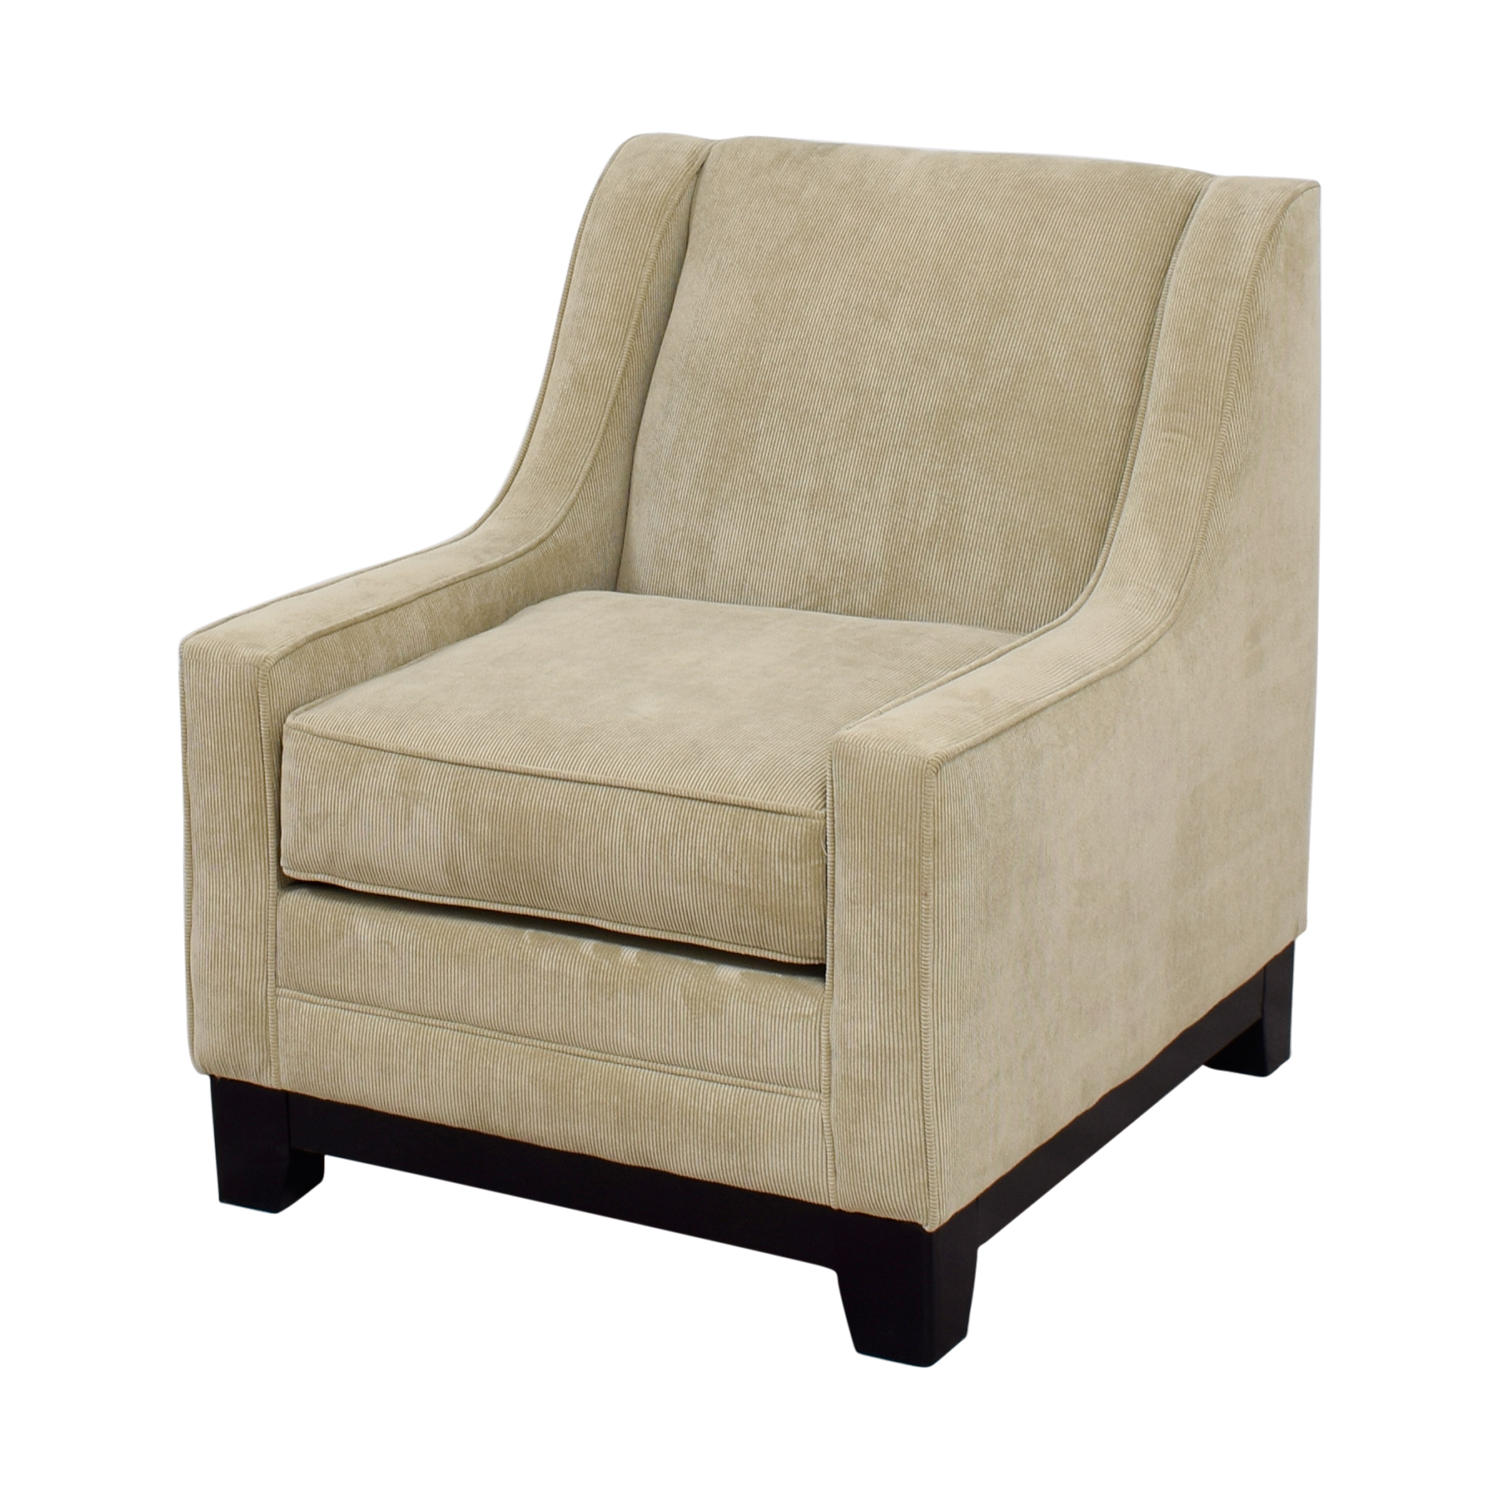 Tan Accent Chair 90 Off May Furniture May Furniture Tan Corduroy Accent